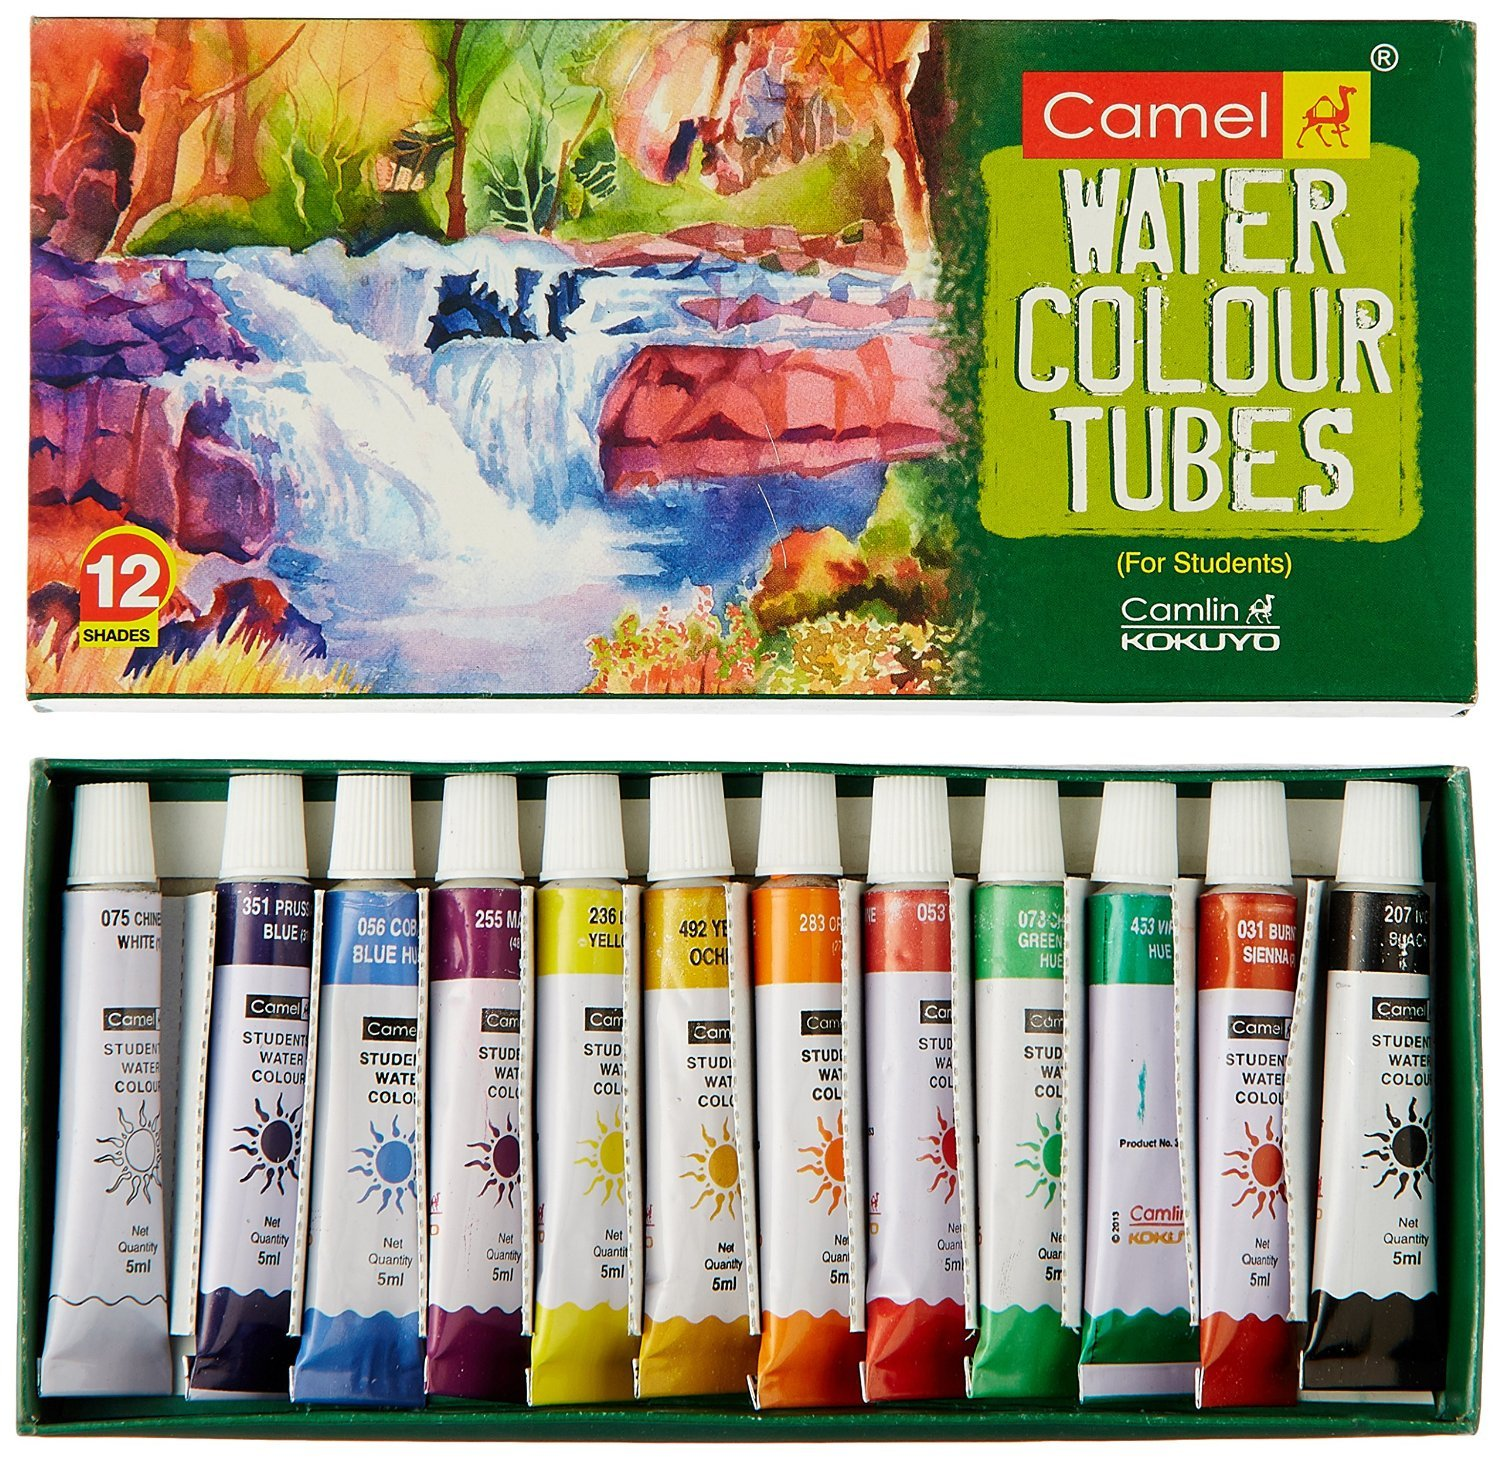 Camel Student Water Color Tube - 5ml each, 12 Shades (Pack of 2)-Total 24 Shades -free Shipping..